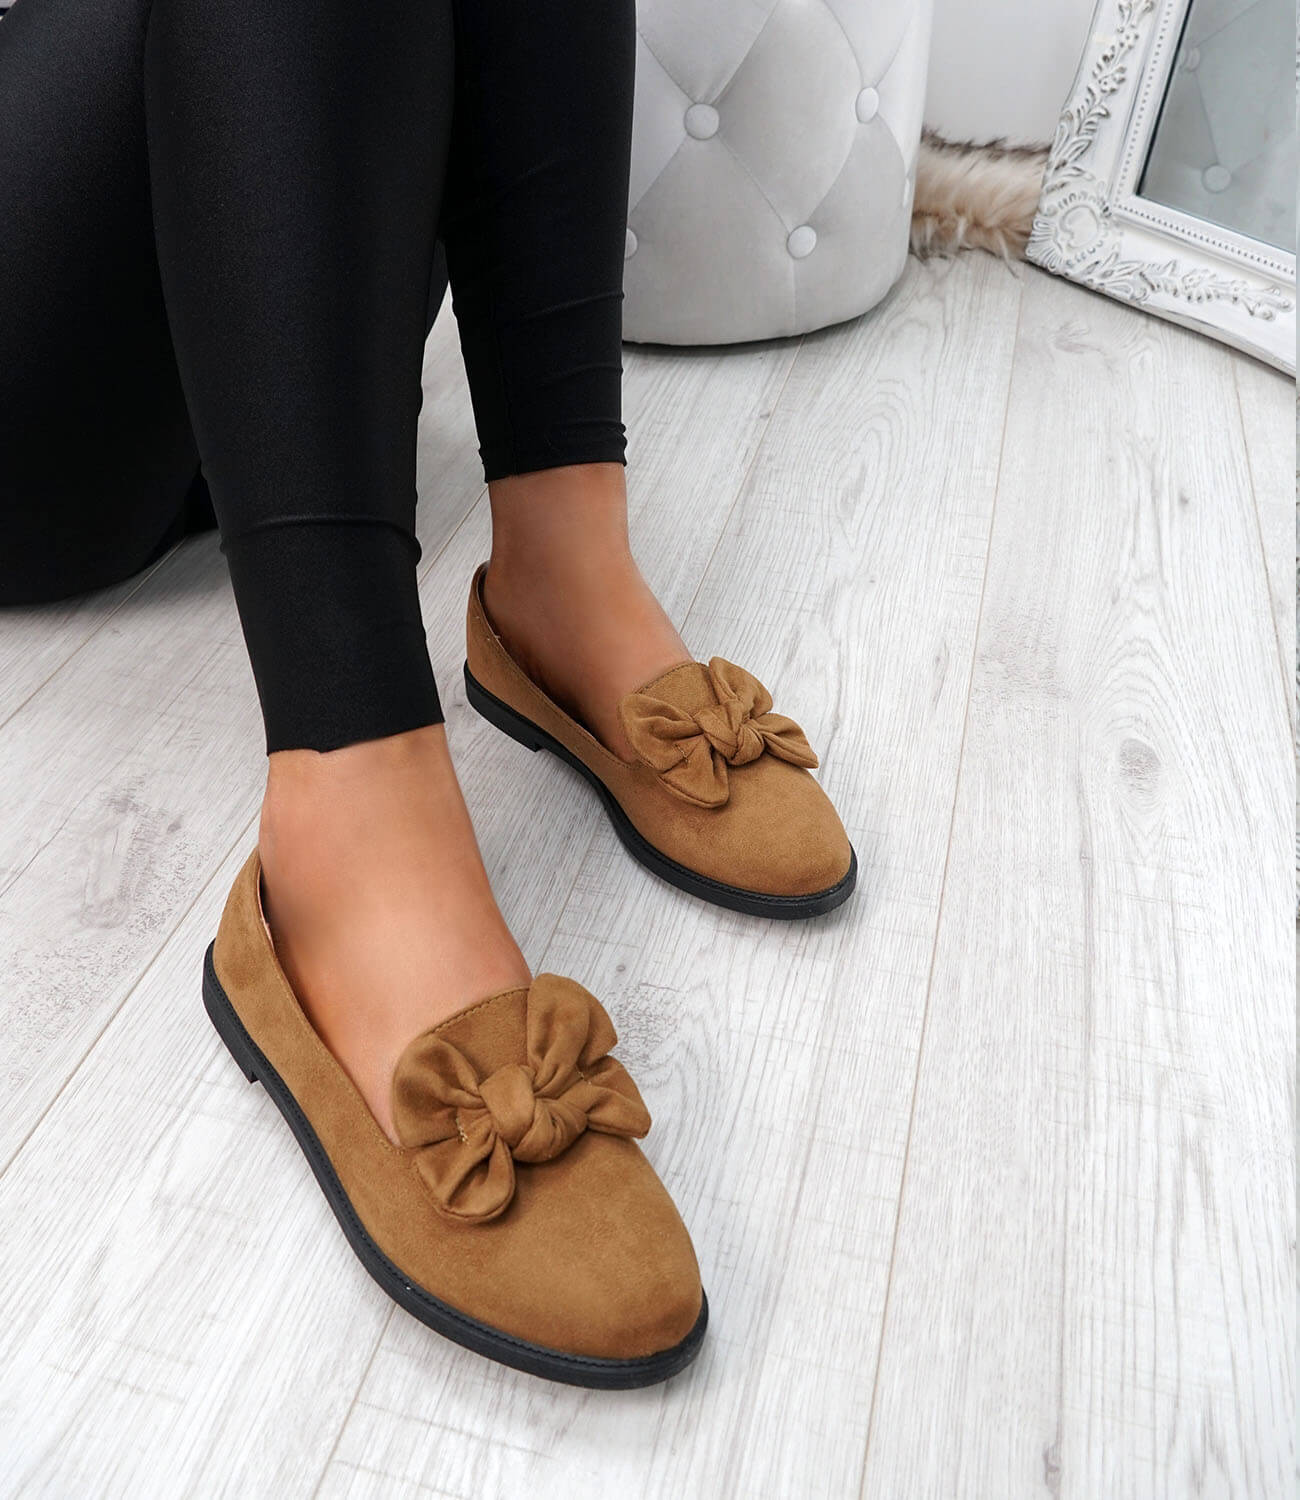 WOMENS-LADIES-BOW-BALLERINA-PUMPS-FLATS-SLIP-ON-BALLET-CASUAL-WORK-SHOES-SIZE thumbnail 20